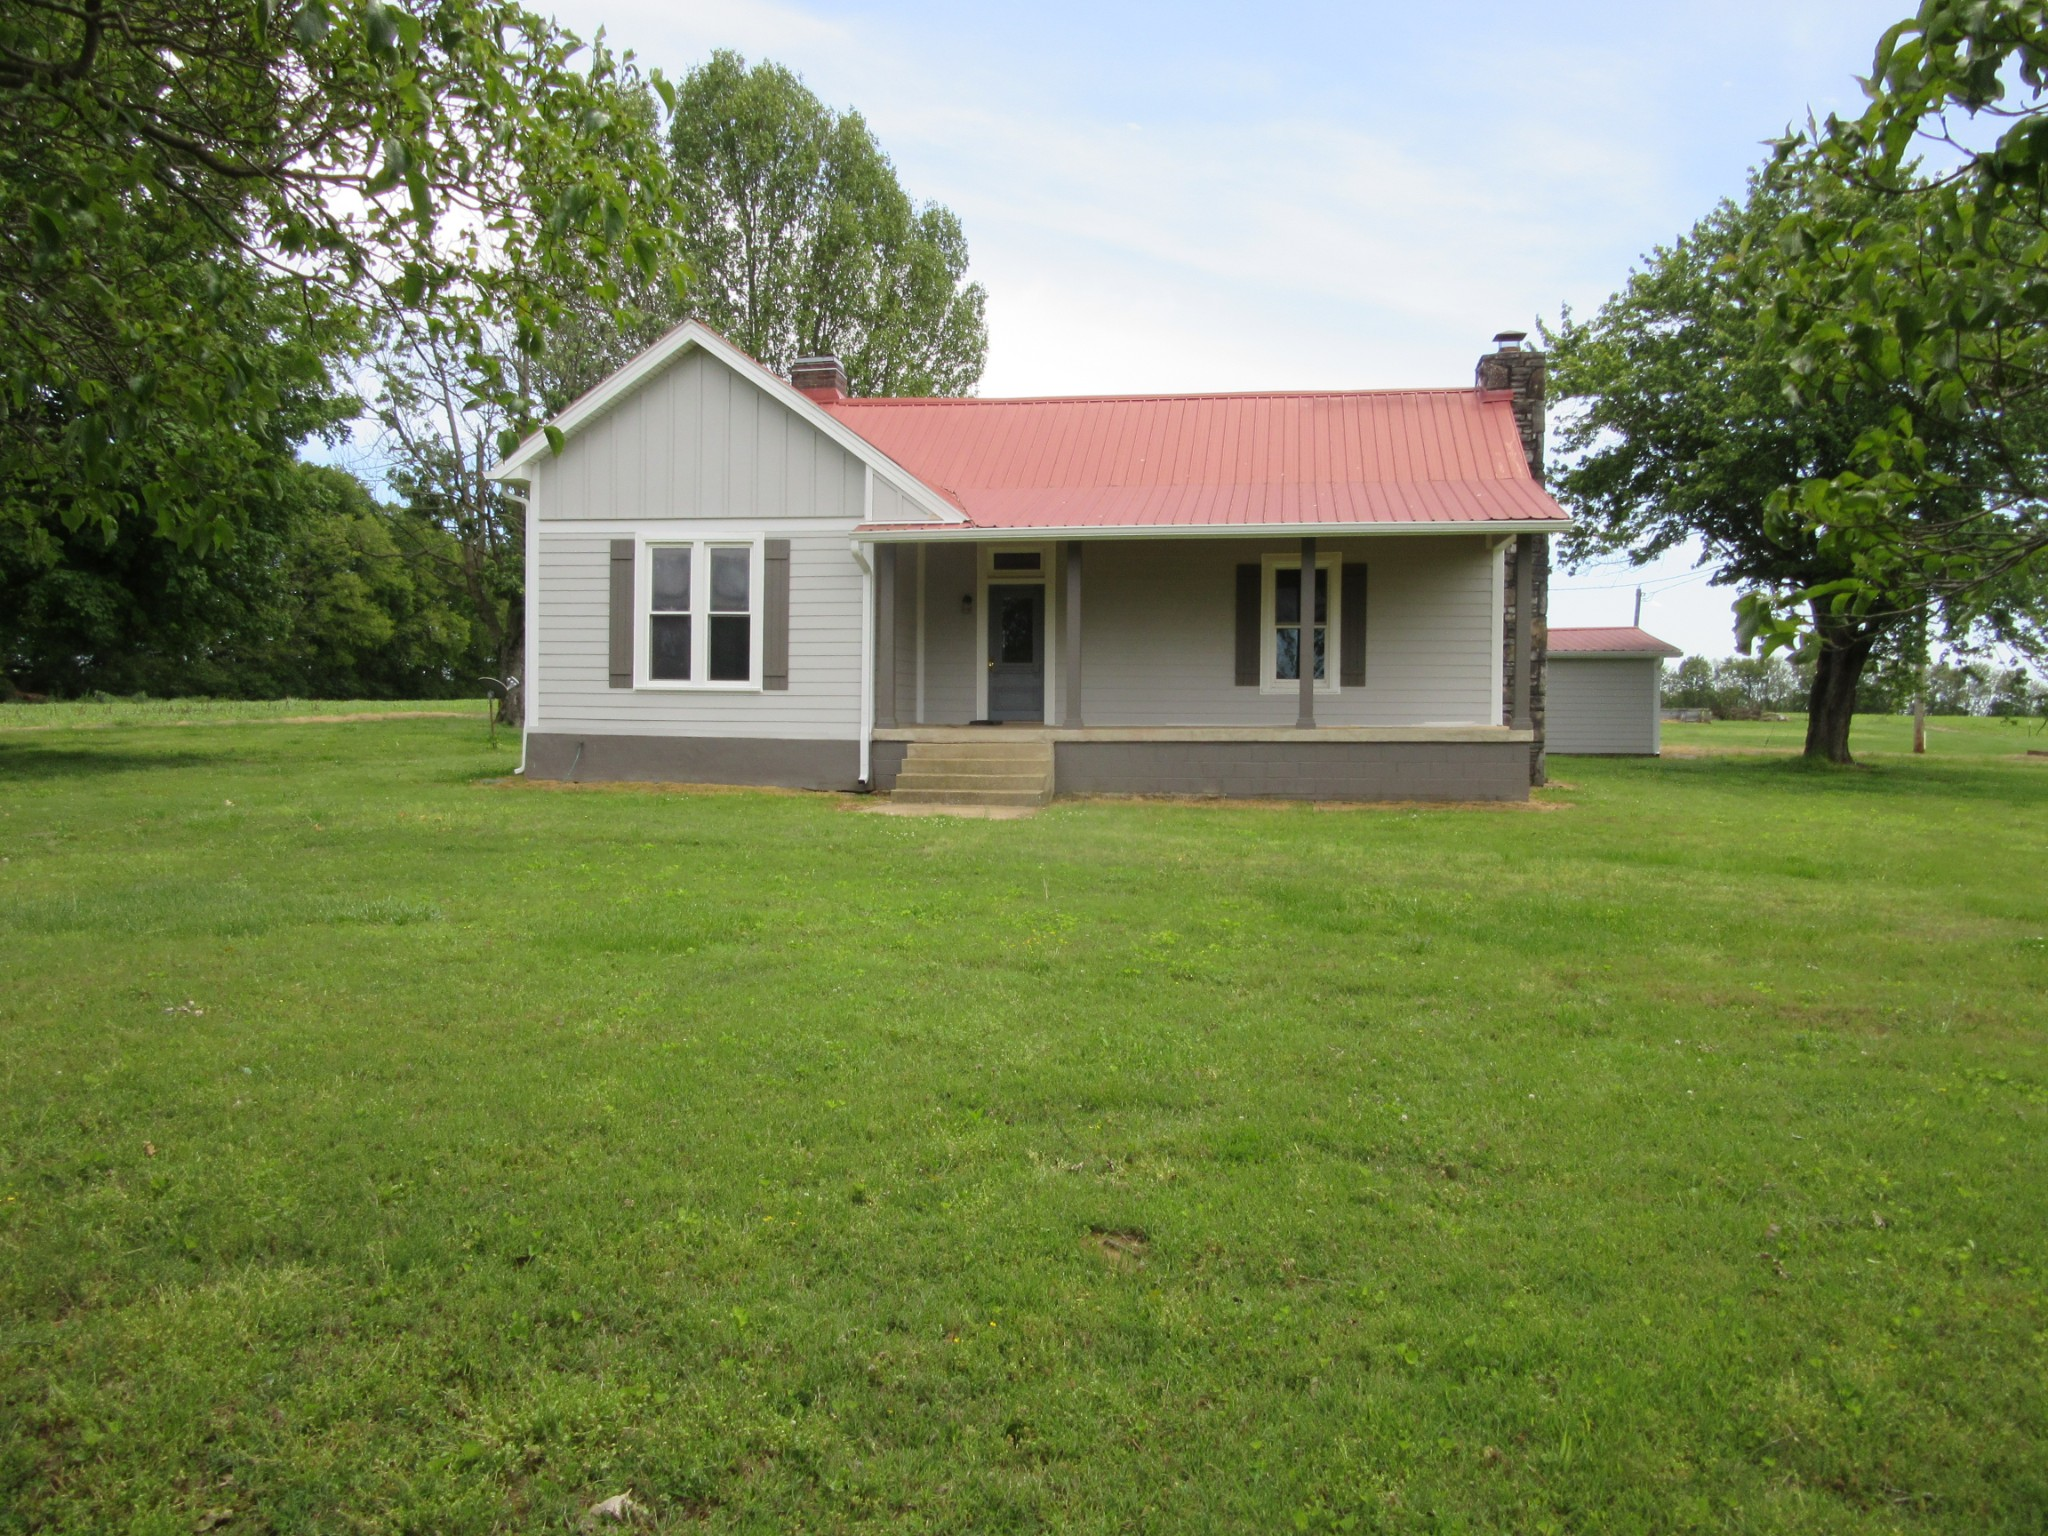 Beautiful Country Farm Home on 2.8 acres, Large Rooms with 2 Car Attached Garage and Shop Building with Peaceful Country Setting, Peach Trees, Apple & Pear Trees Surrounded by Corn and Soybean Field.